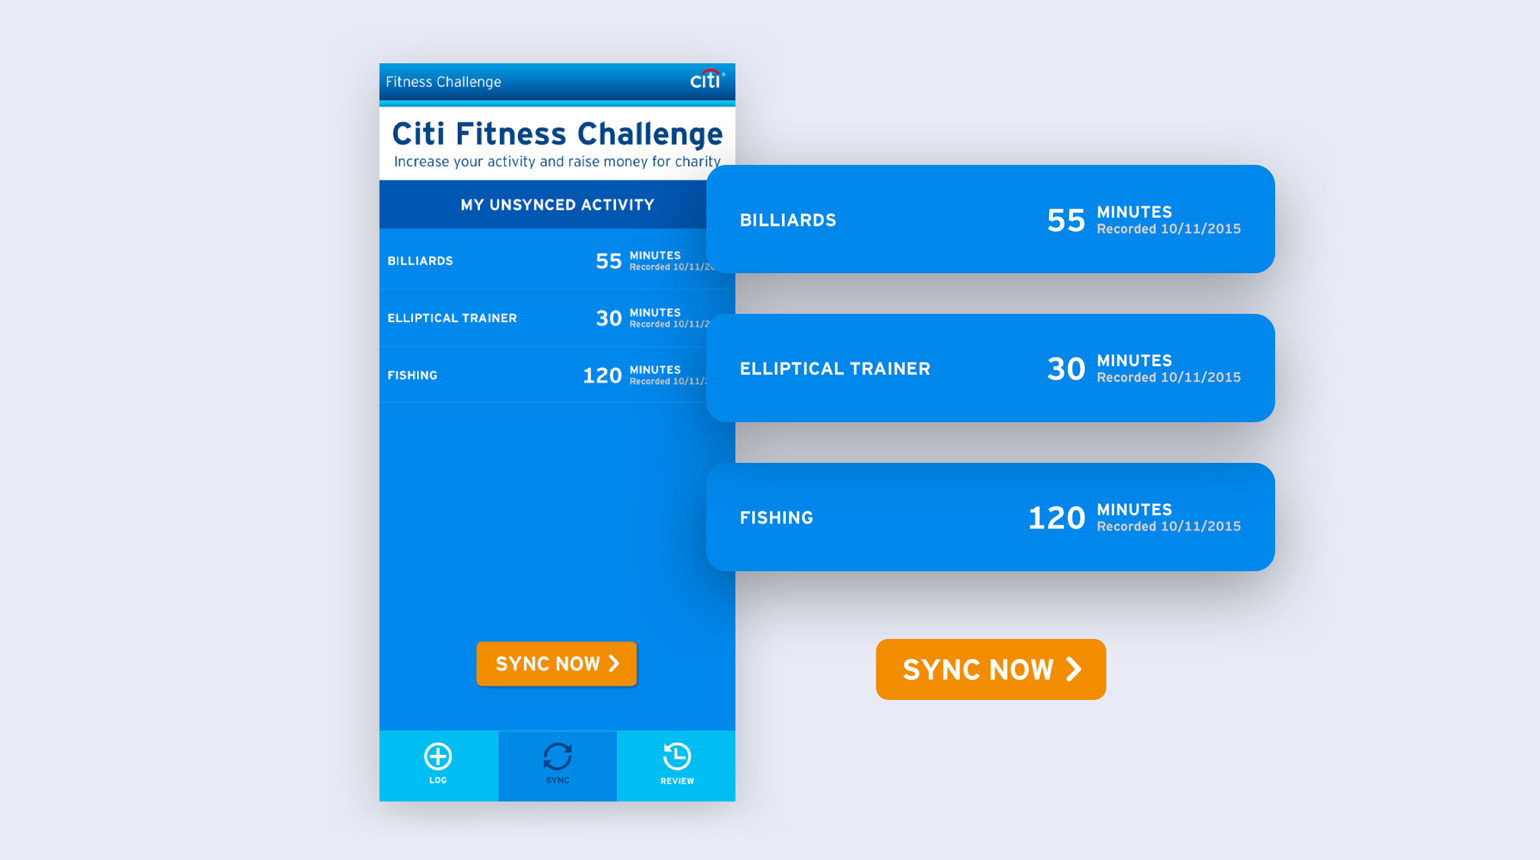 Citi Fitness Challenge unsycned activity challenge screen